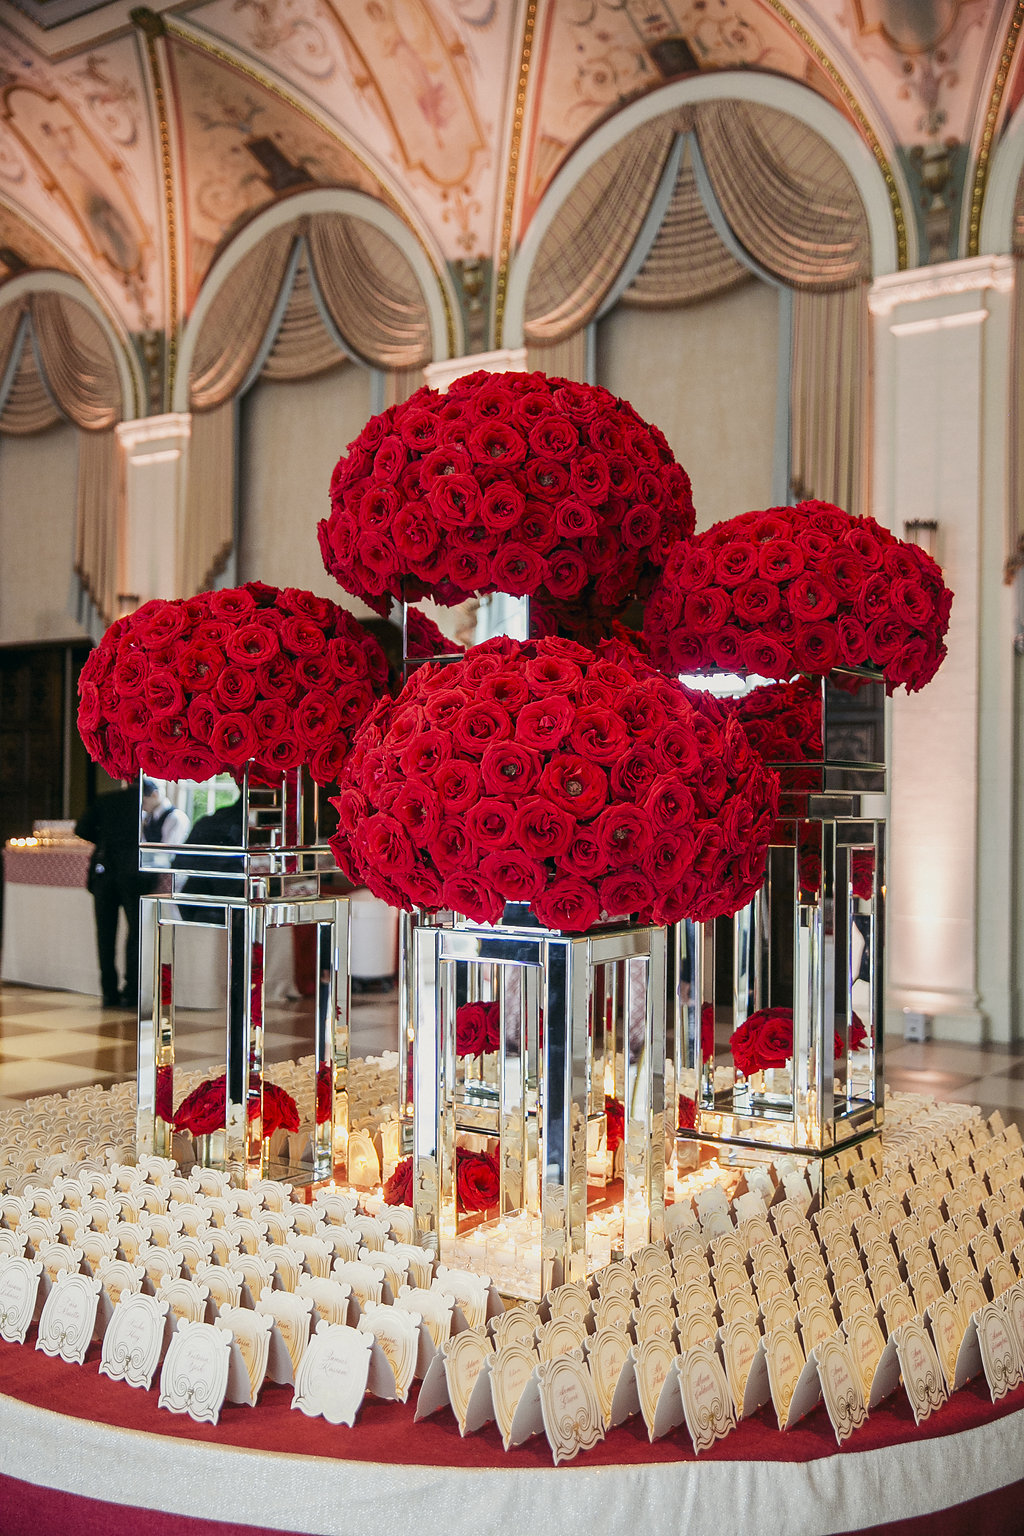 large red rose arrangements on a table with place cards in rows